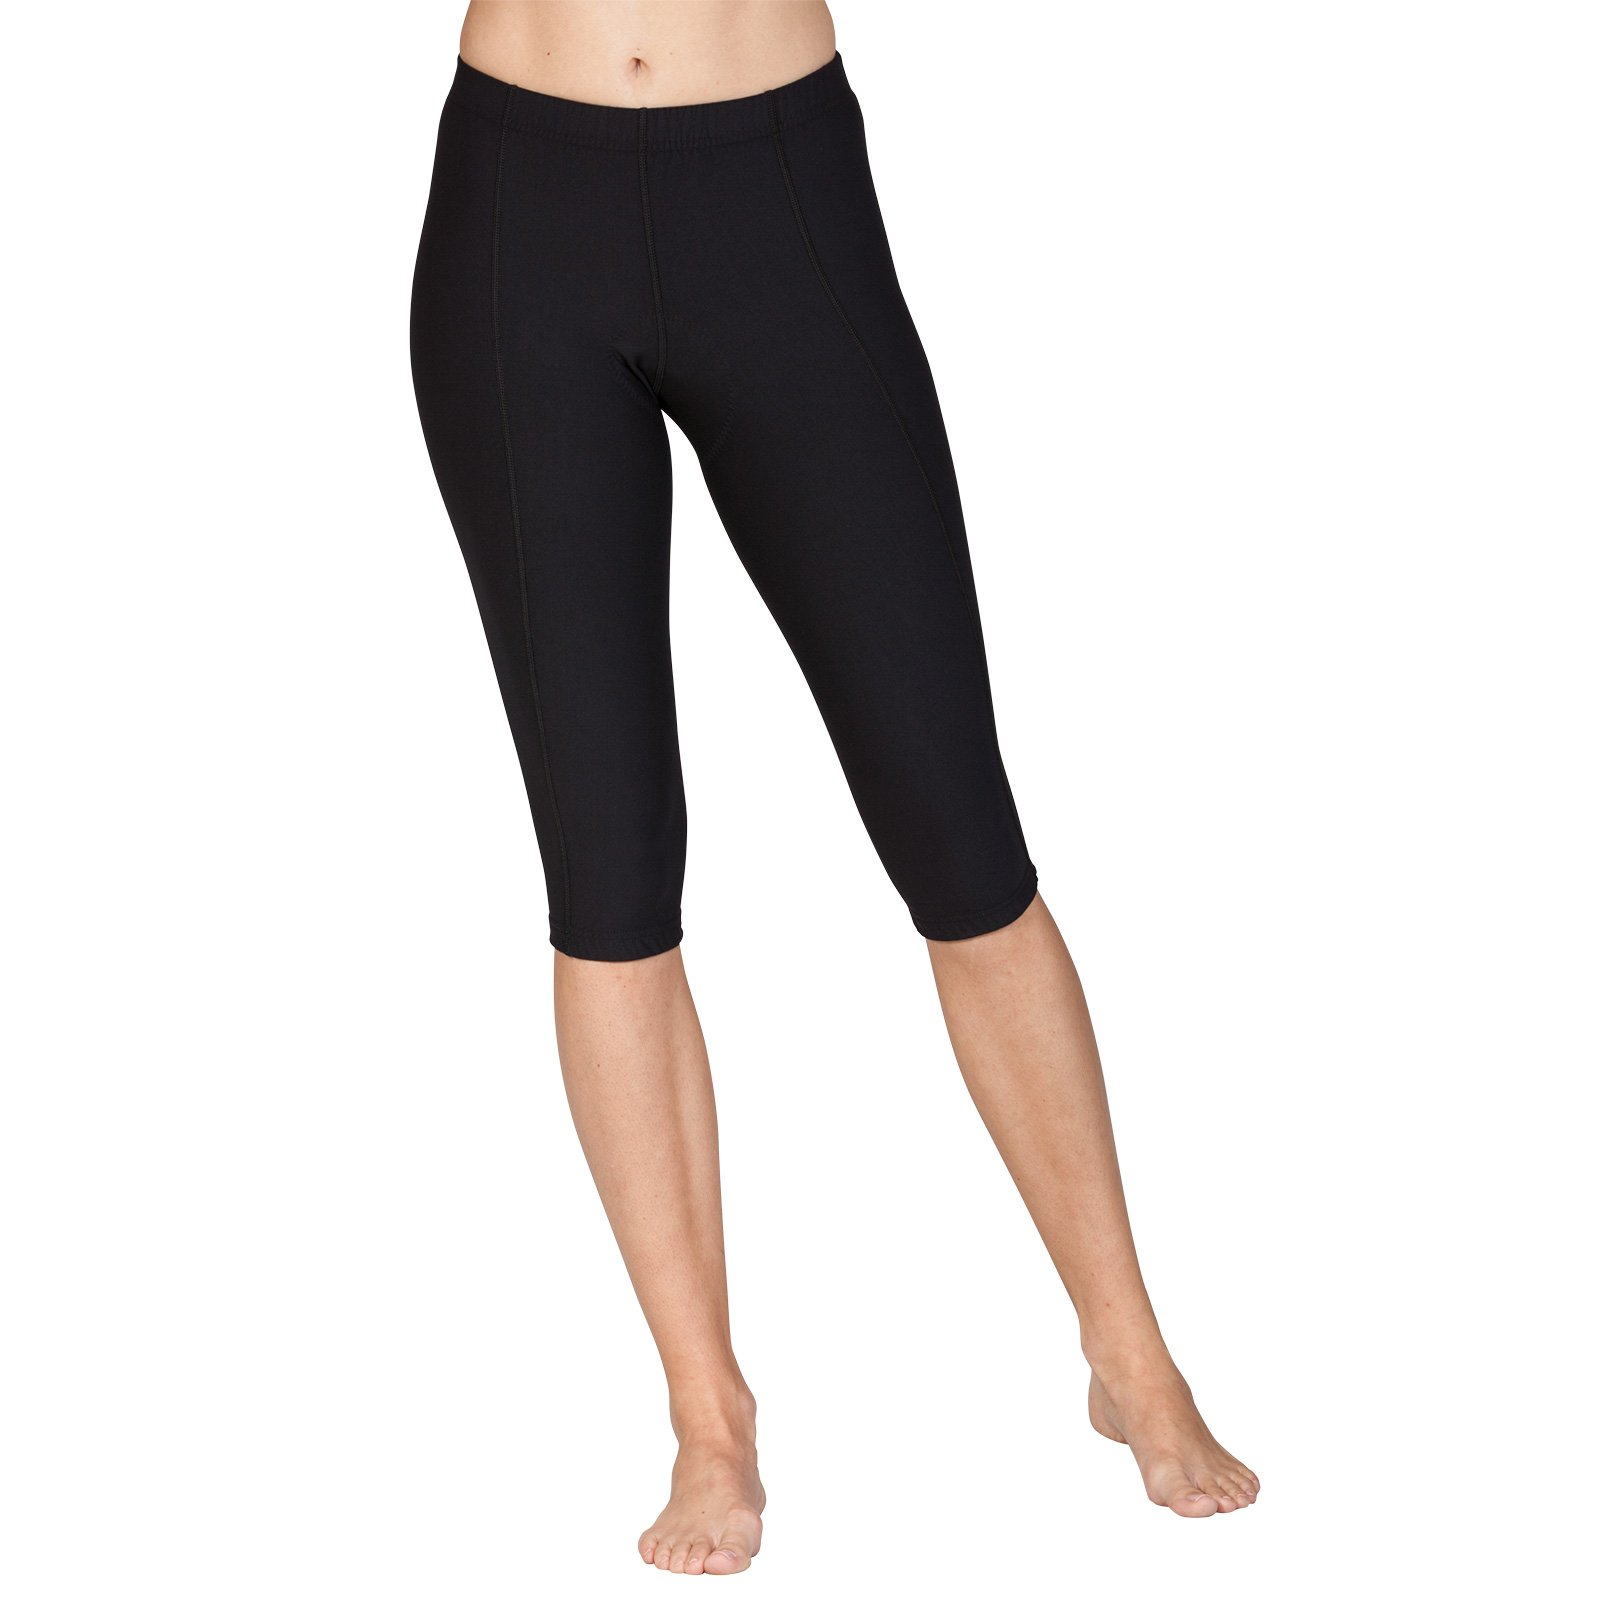 Terry Cycling Knickers For Women - One Of Our Most Popular Black Bike Bottoms For All-Season Riding - Black - Small by Terry